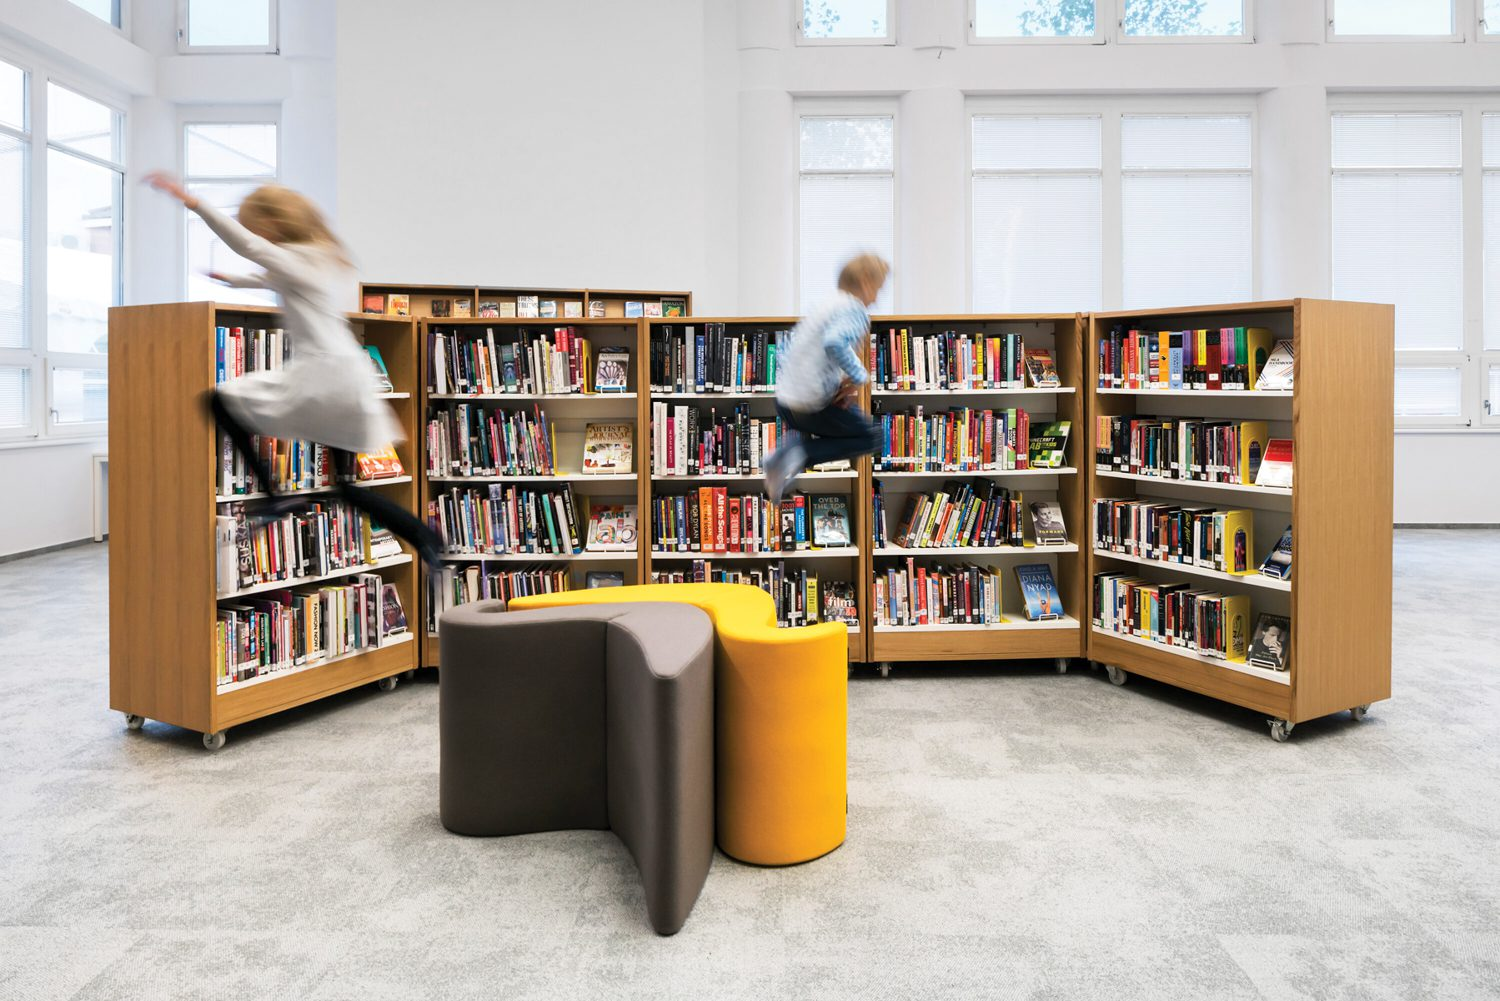 Library with yellow seating.